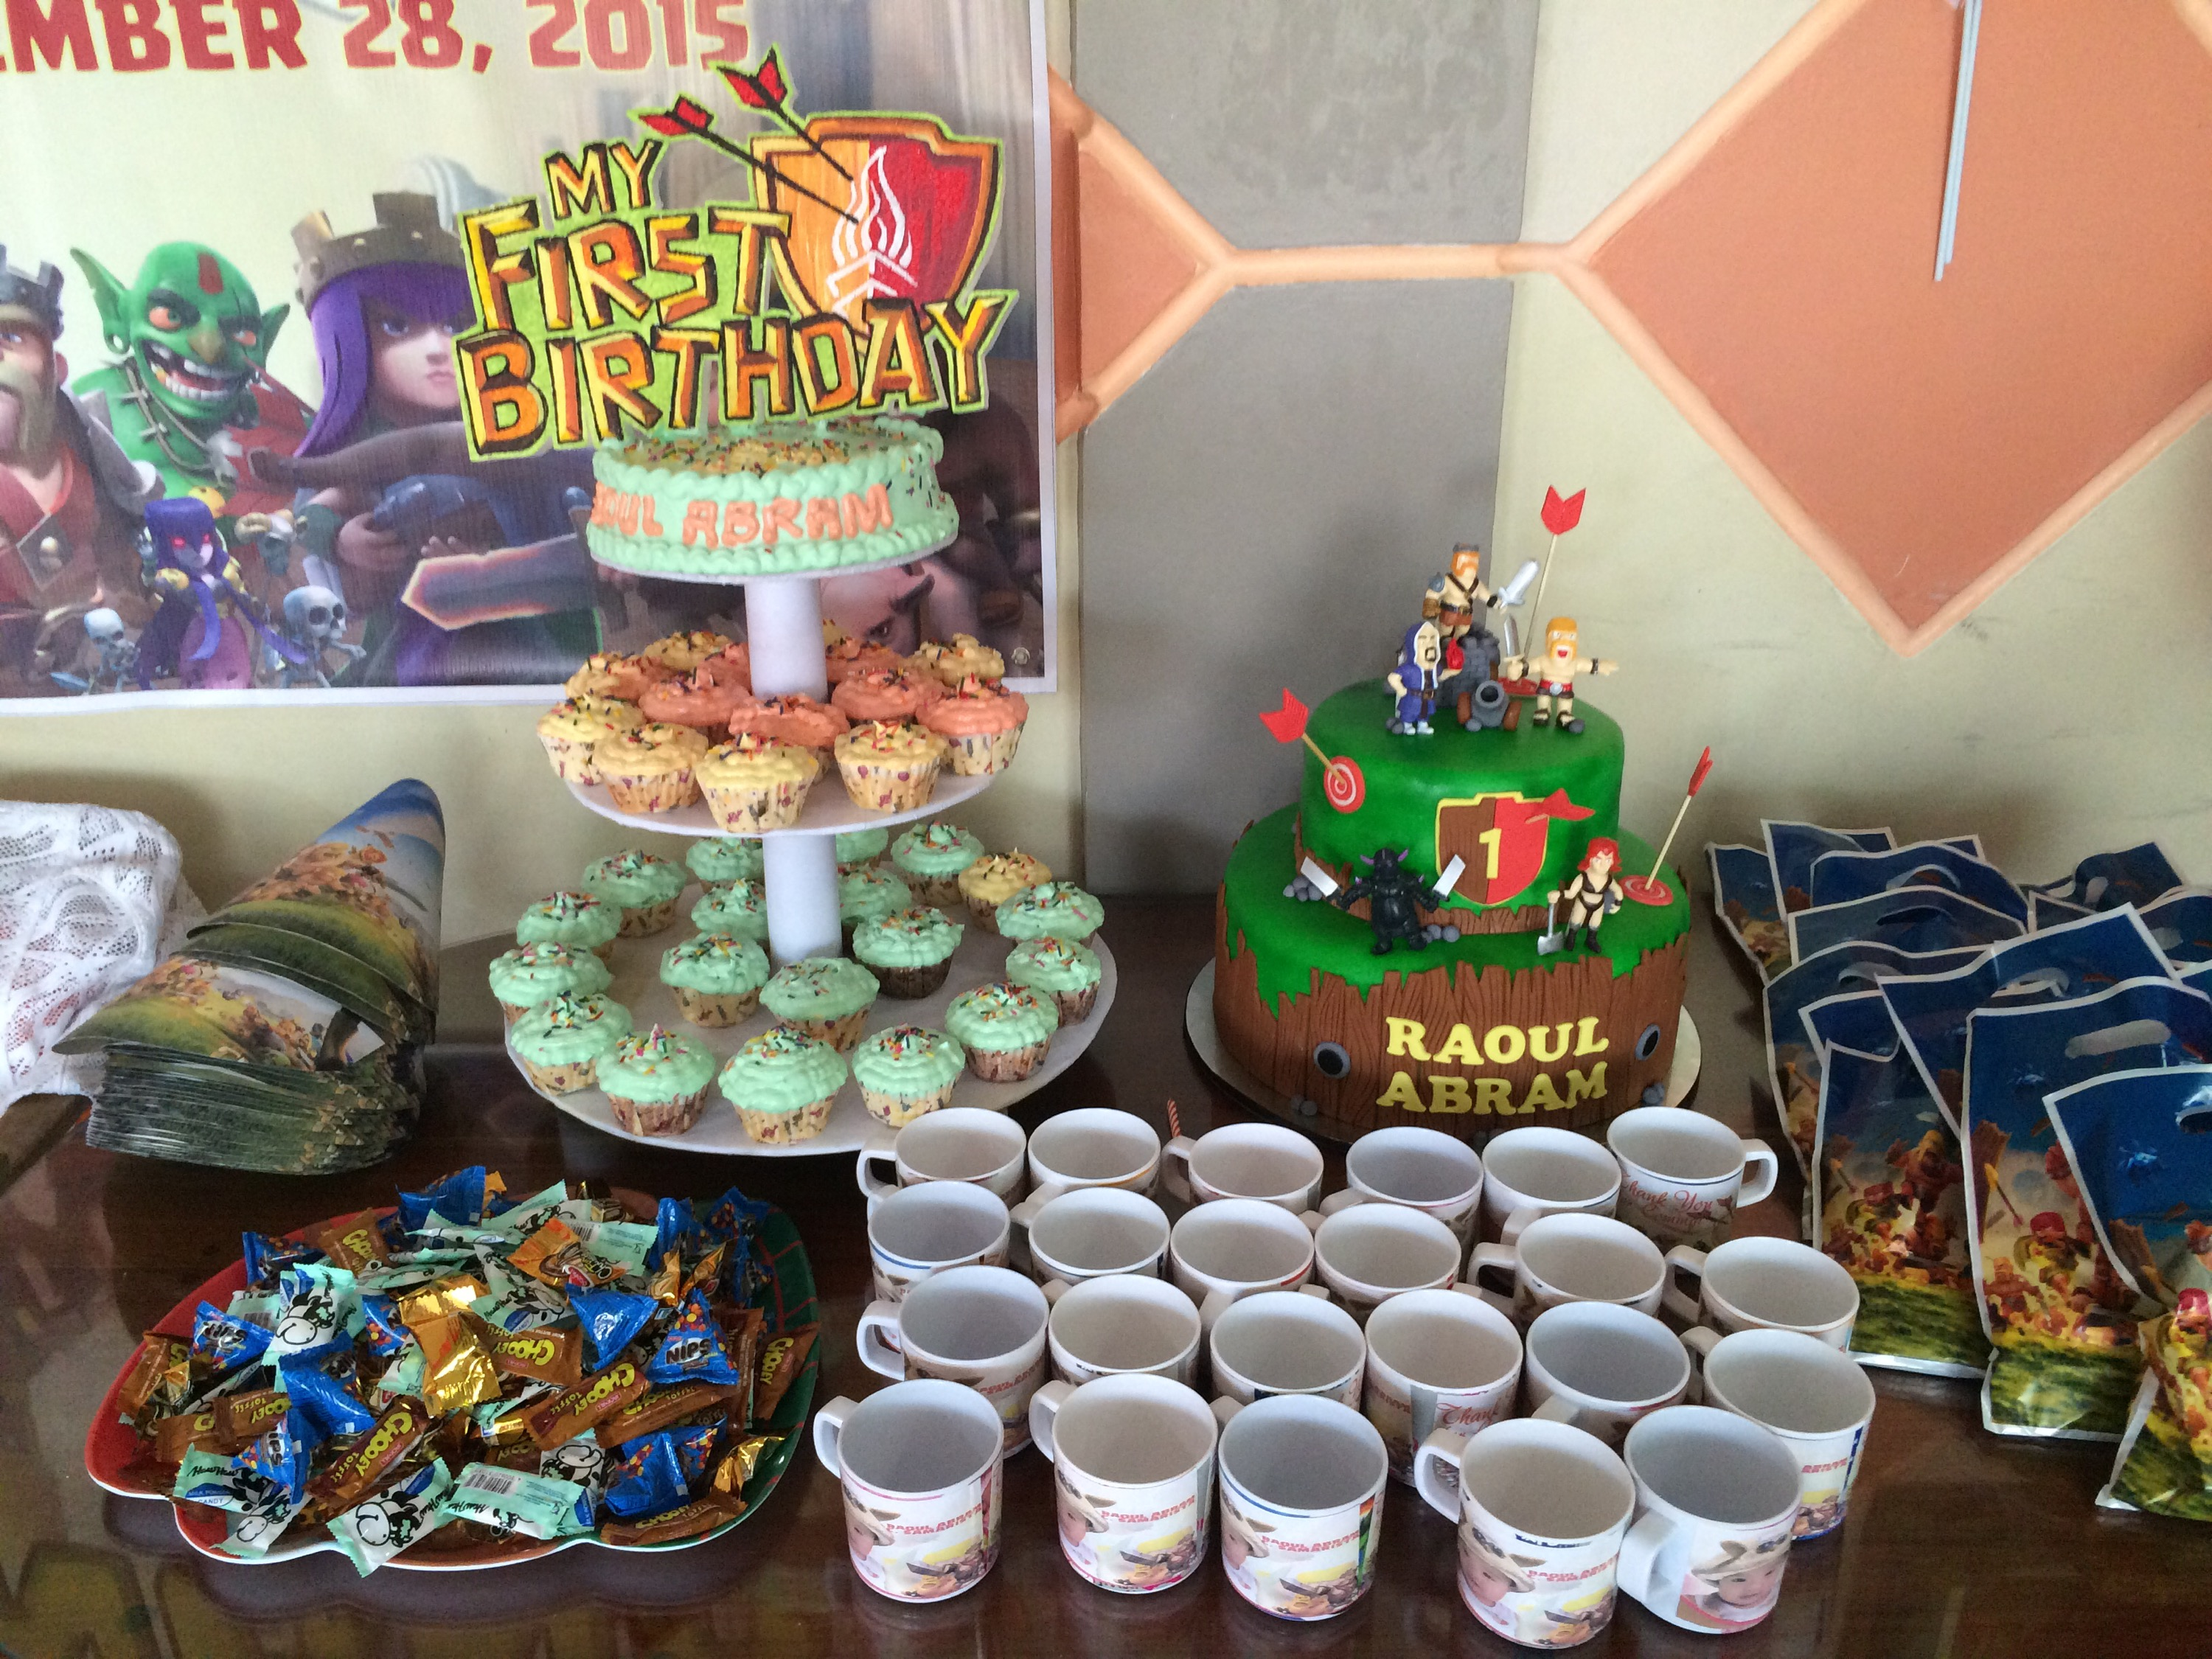 Distinctive Cupcakes By Criston Dormitel Tiered Cake By Bake Art Hats Clans Med Bilogang Pisngi Clash Souvenir Cups By My Zandro Kaarawan A Clash Cupcakes Cupcakes Host Nailed It Clash nice food Clash Of The Cupcakes